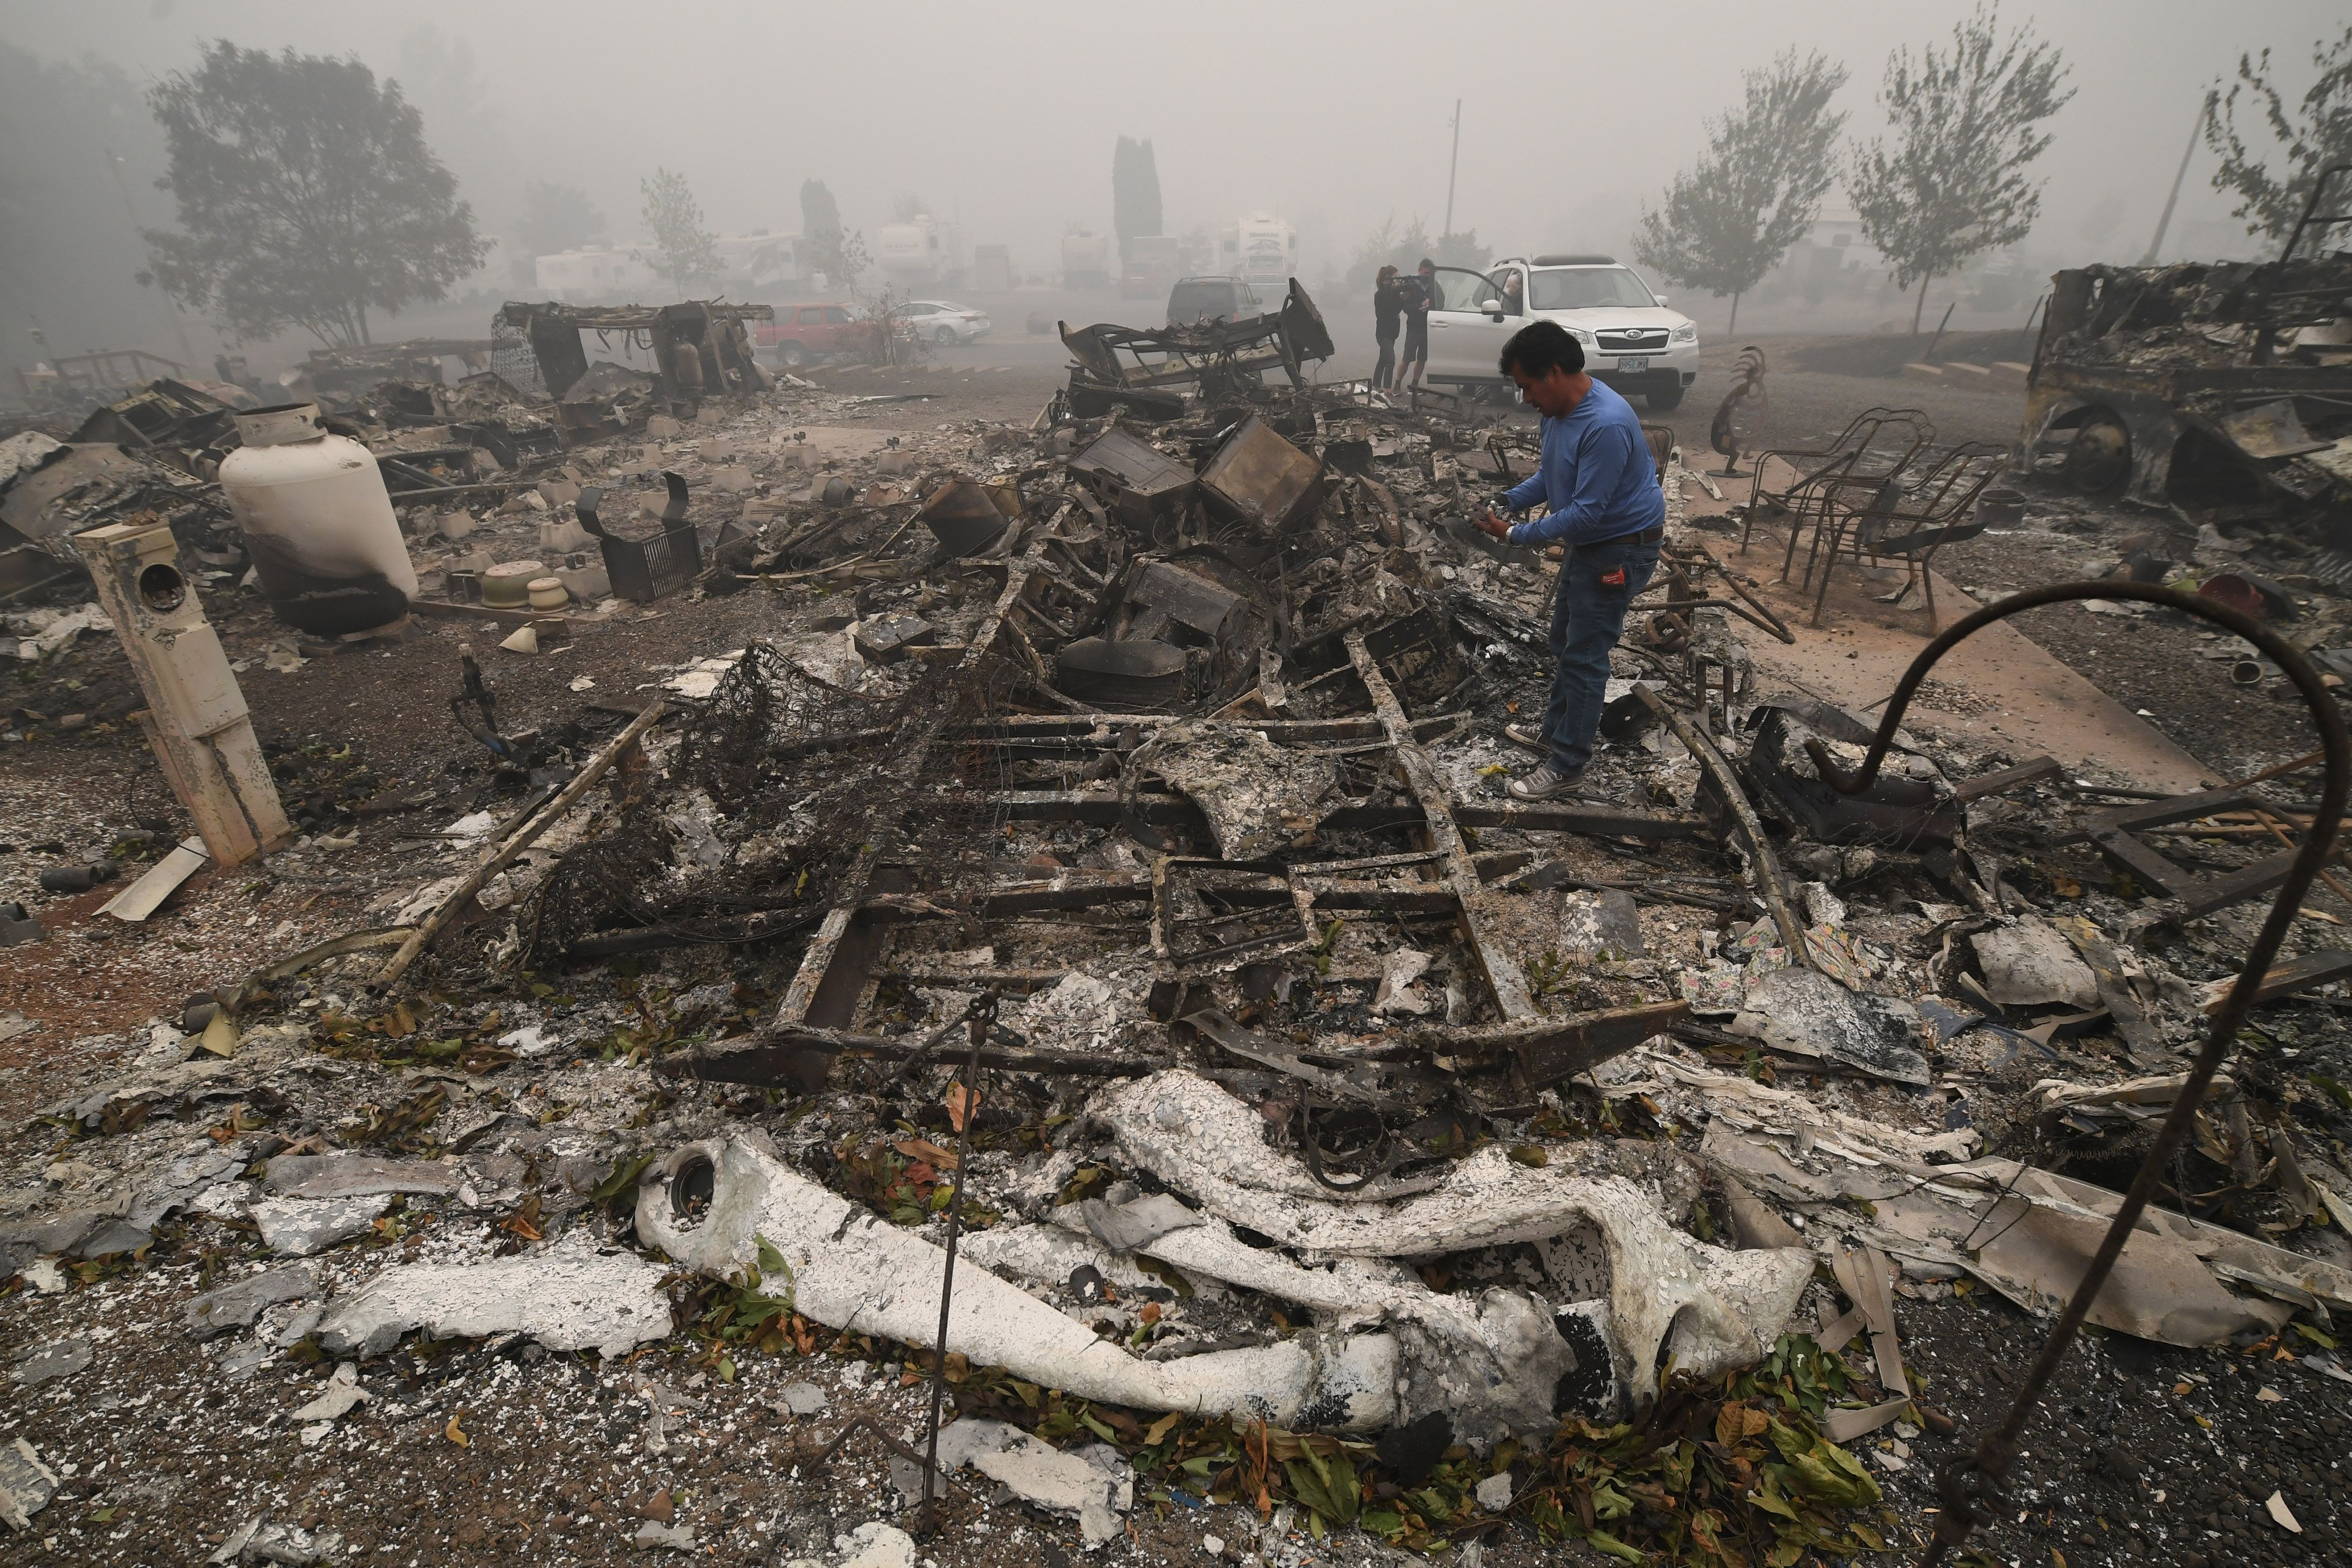 Fires in Oregon, California and Washington spread, death toll rises